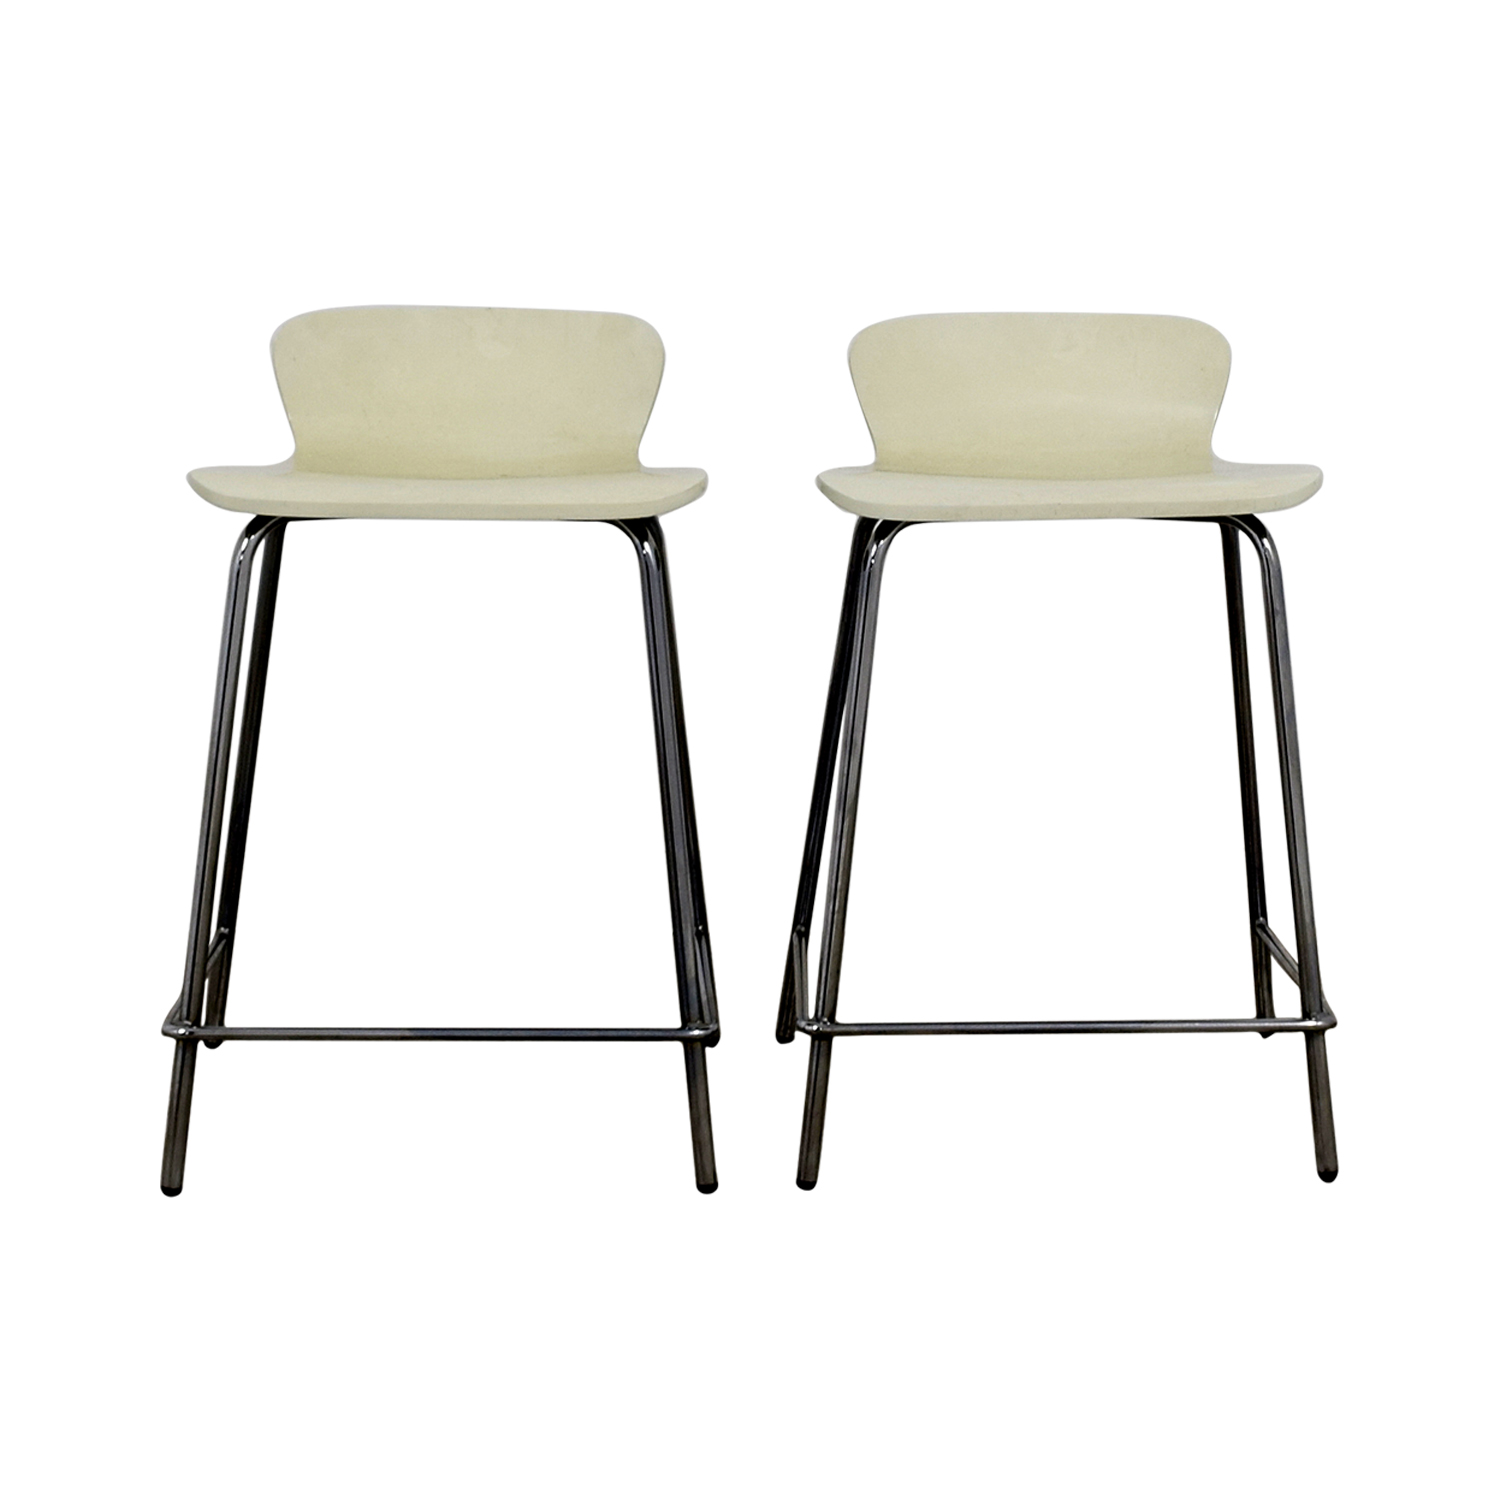 Crate & Barrel Crate & Barrel Felix White Counter Stools Chairs